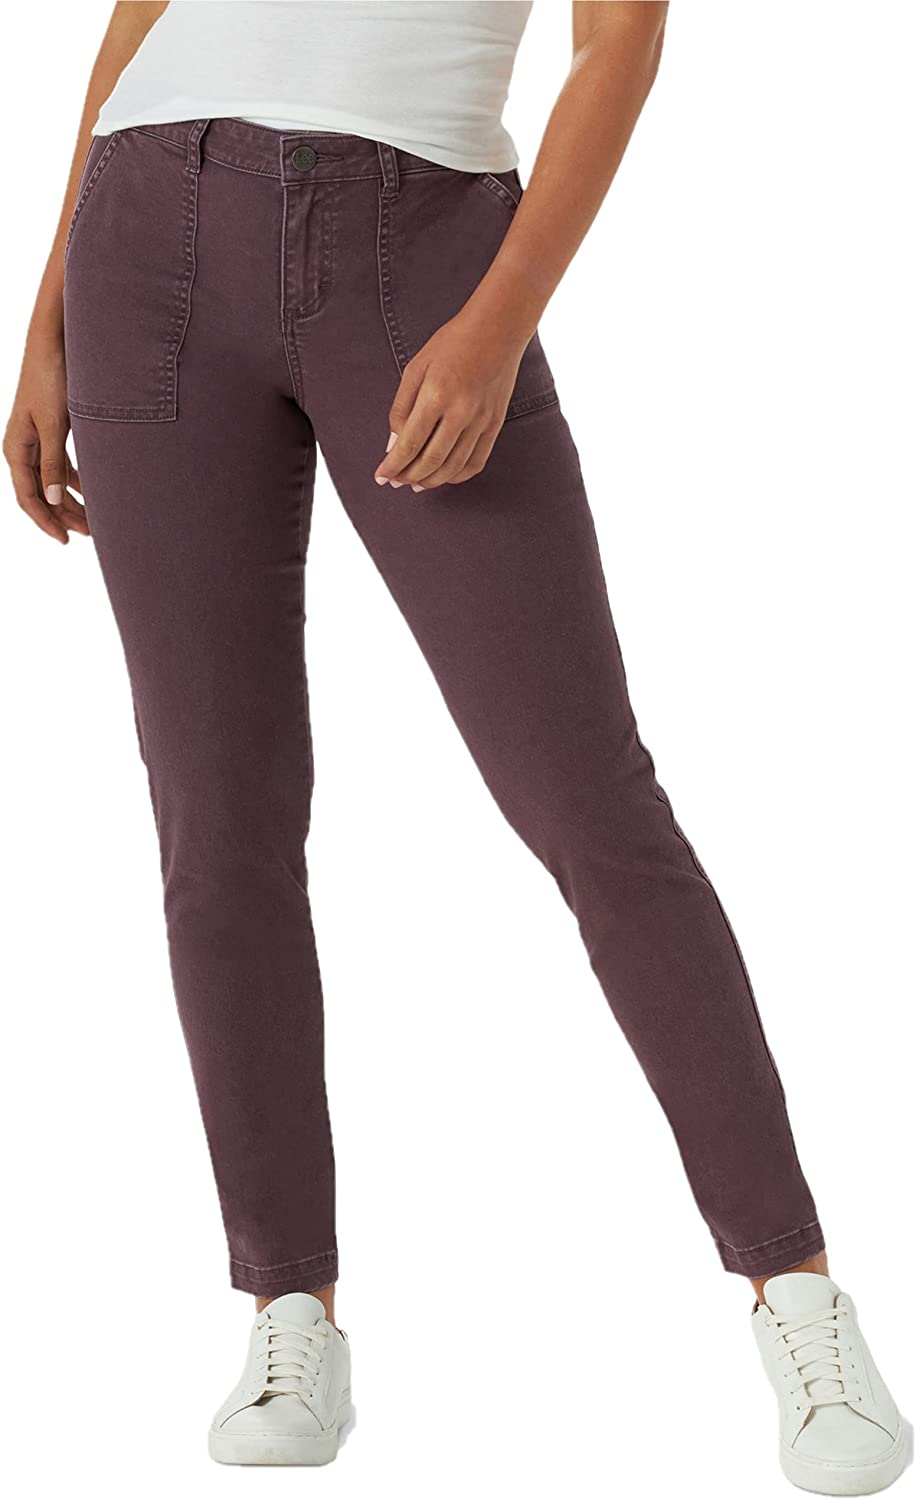 Lee Women's Legendary Regular Fit Tapered Utility Pant: Clothing, Shoes & Jewelry